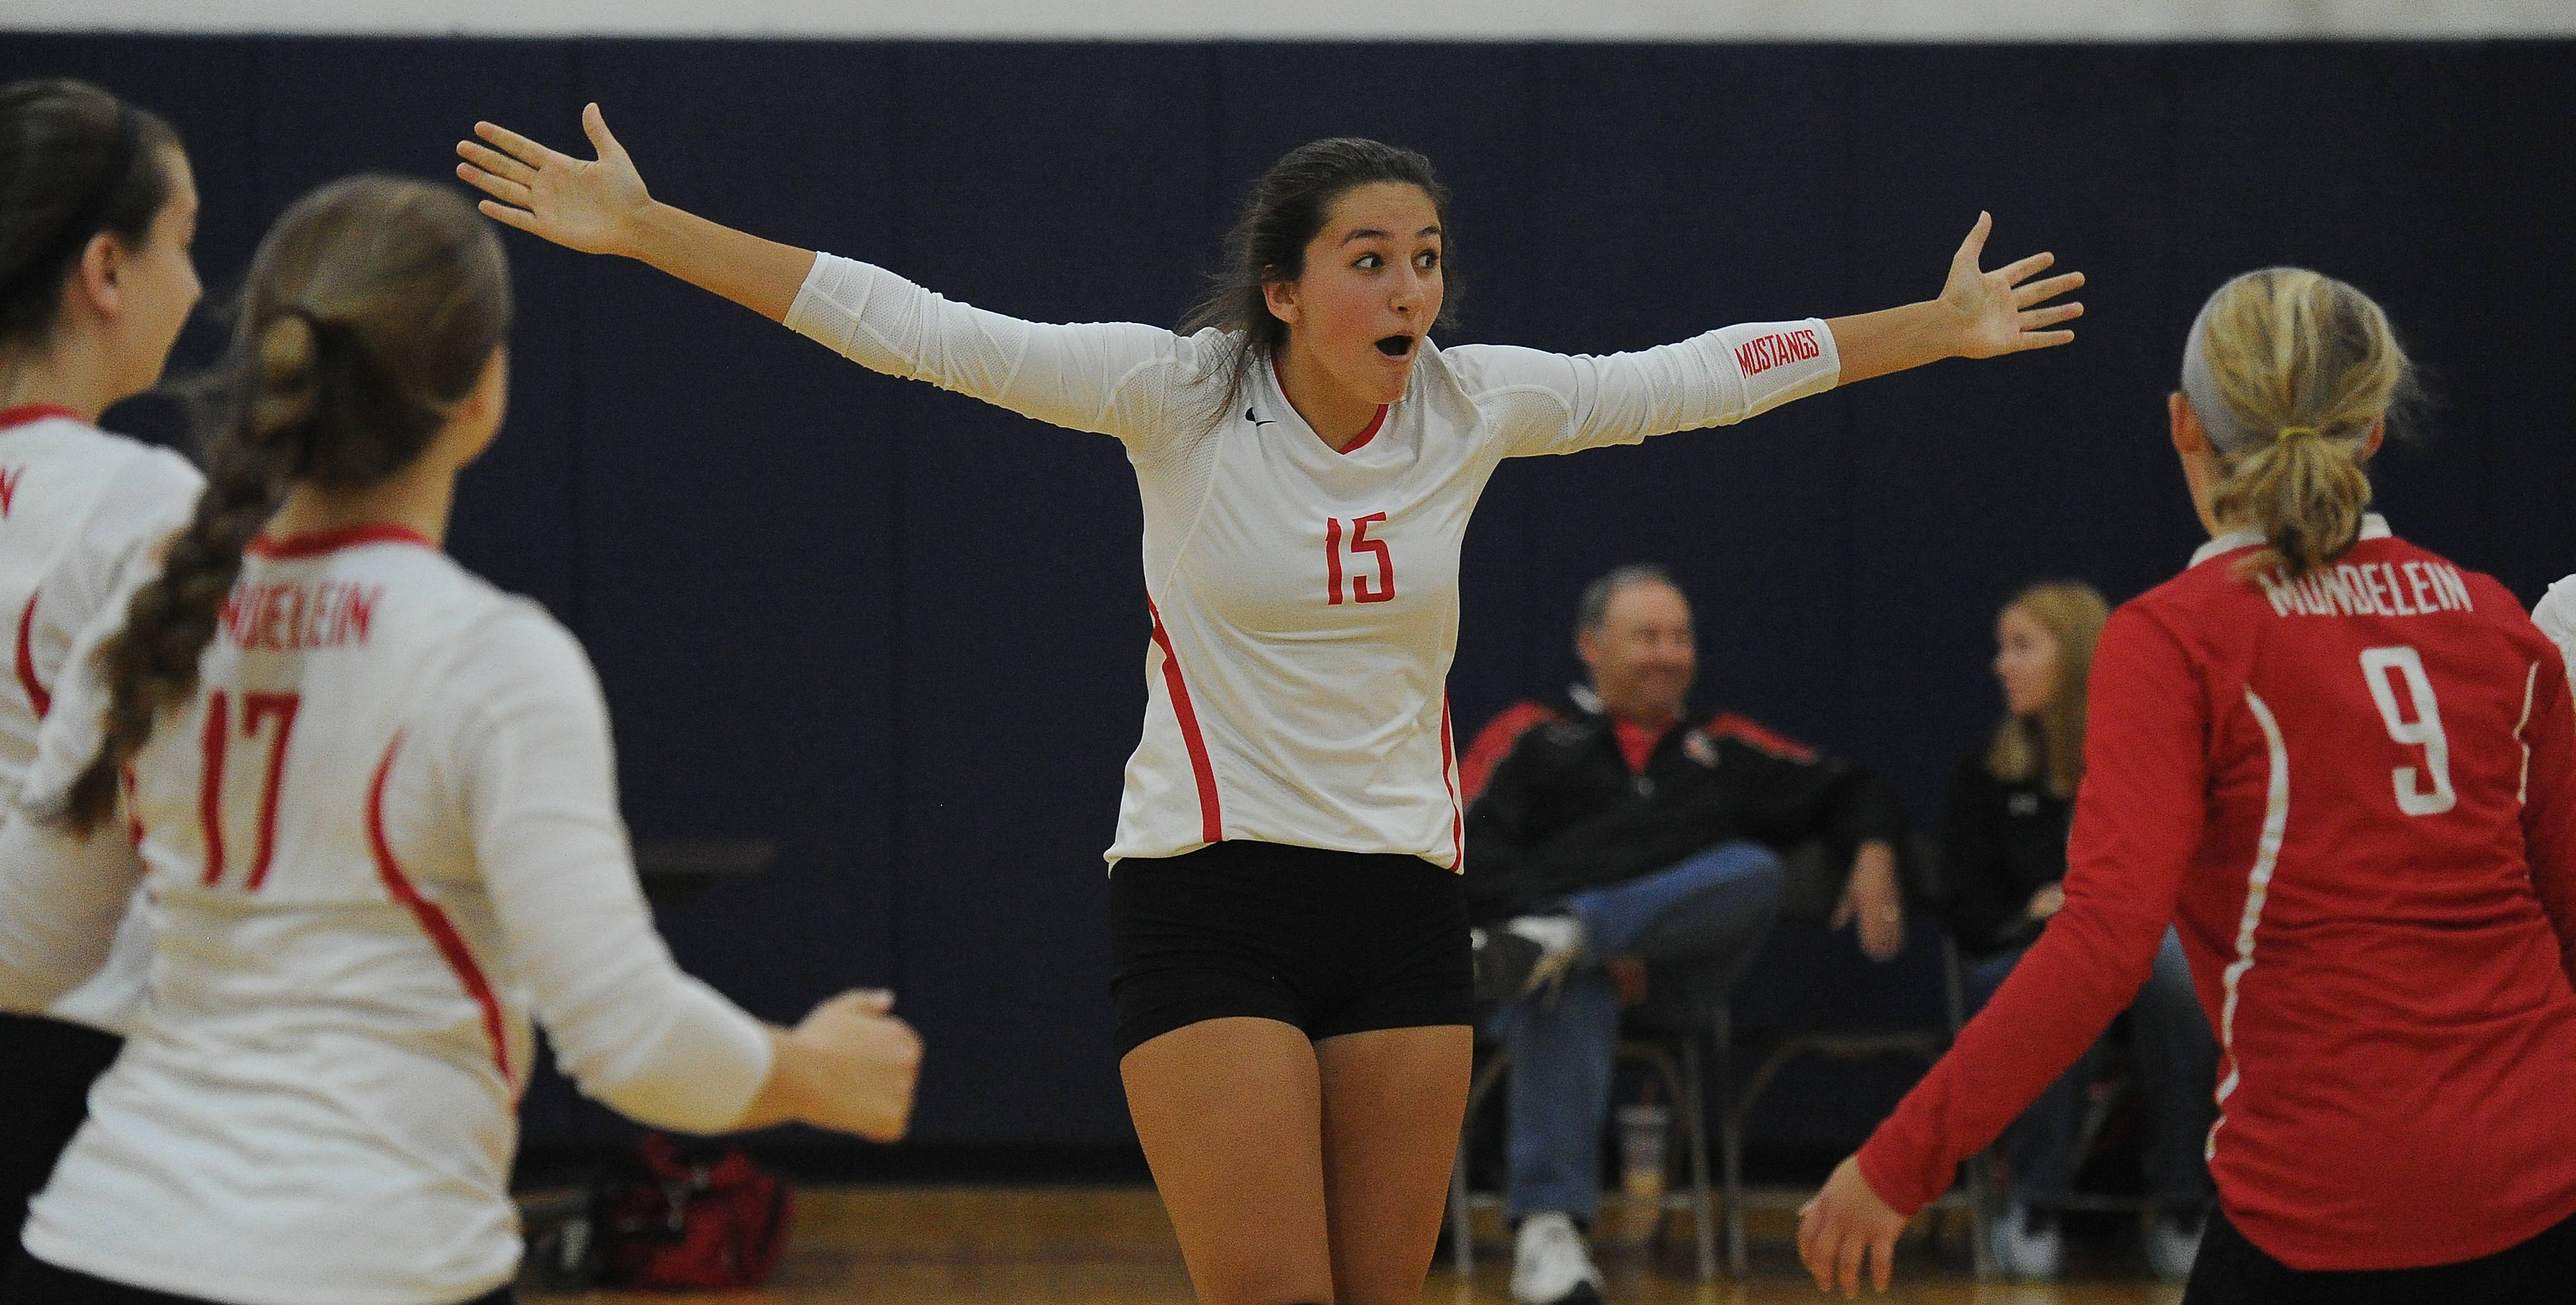 Mundelein's Faith Krabbe celebrates after a victory against Schaumburg in the Peggy Scholten Volleyball Classic on Saturday at Conant.